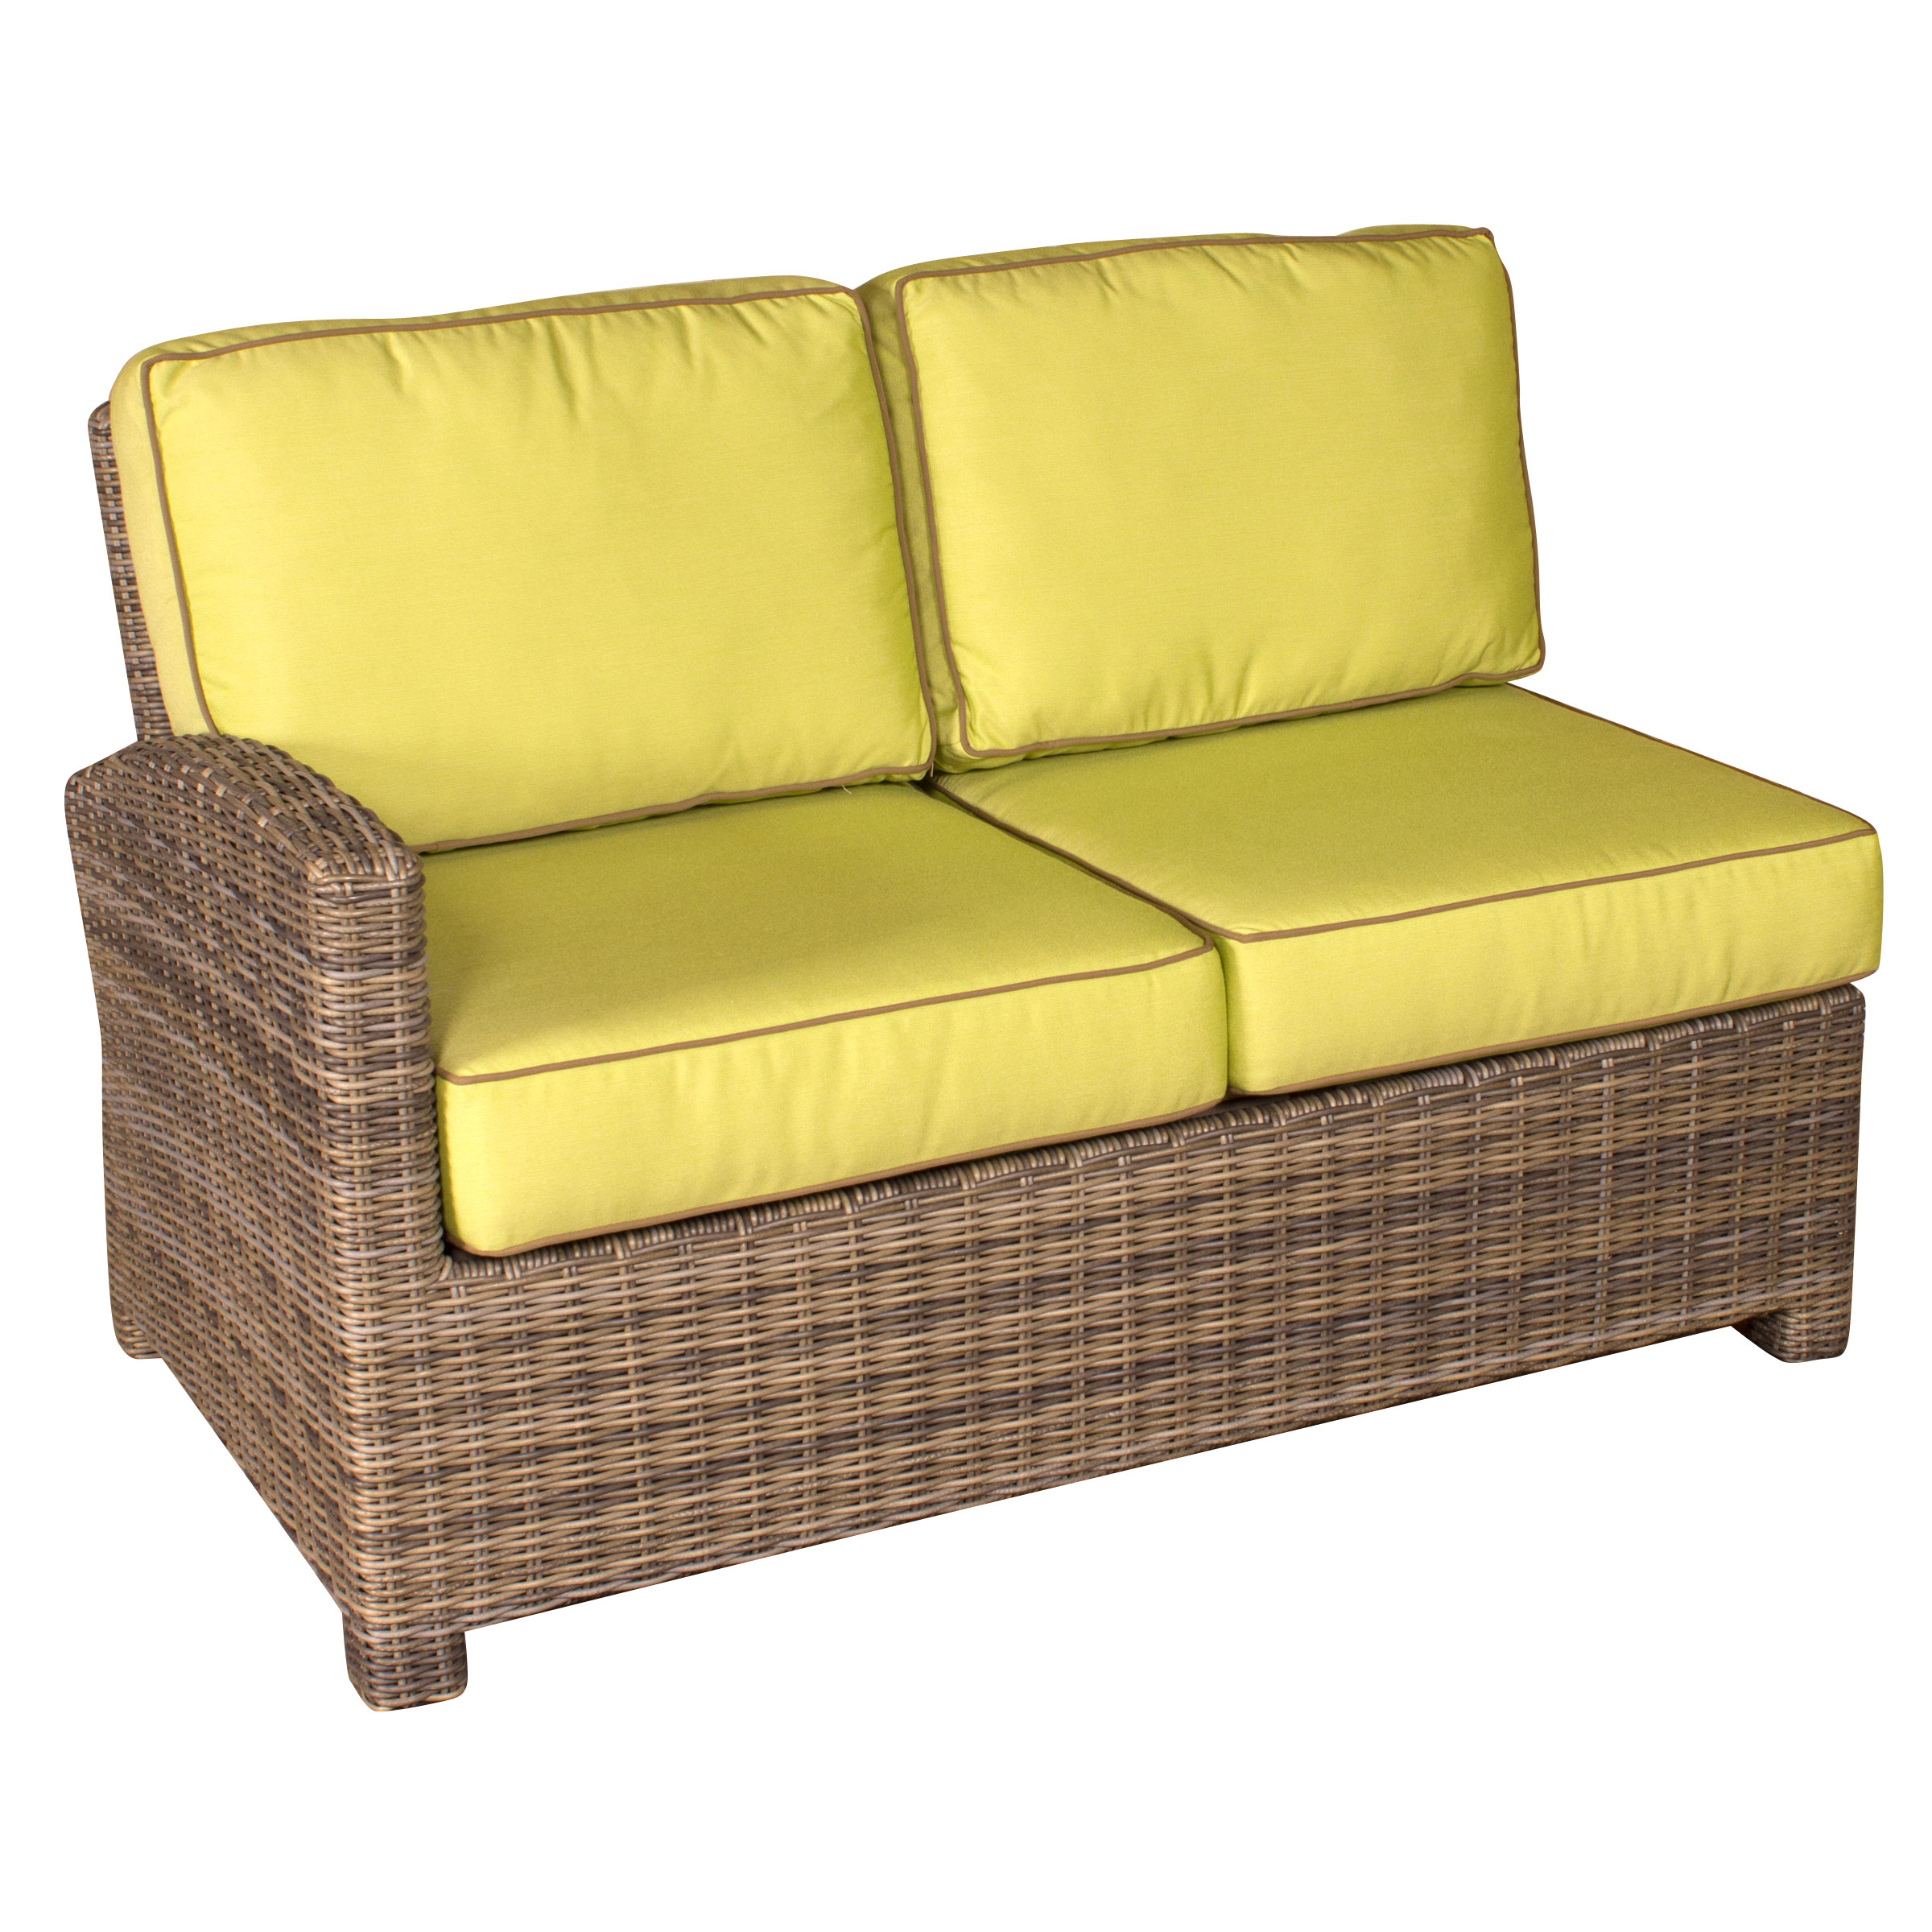 Bainbridge Wicker Left Arm Sectional End Loveseat - Canvas Buttercup Fabric